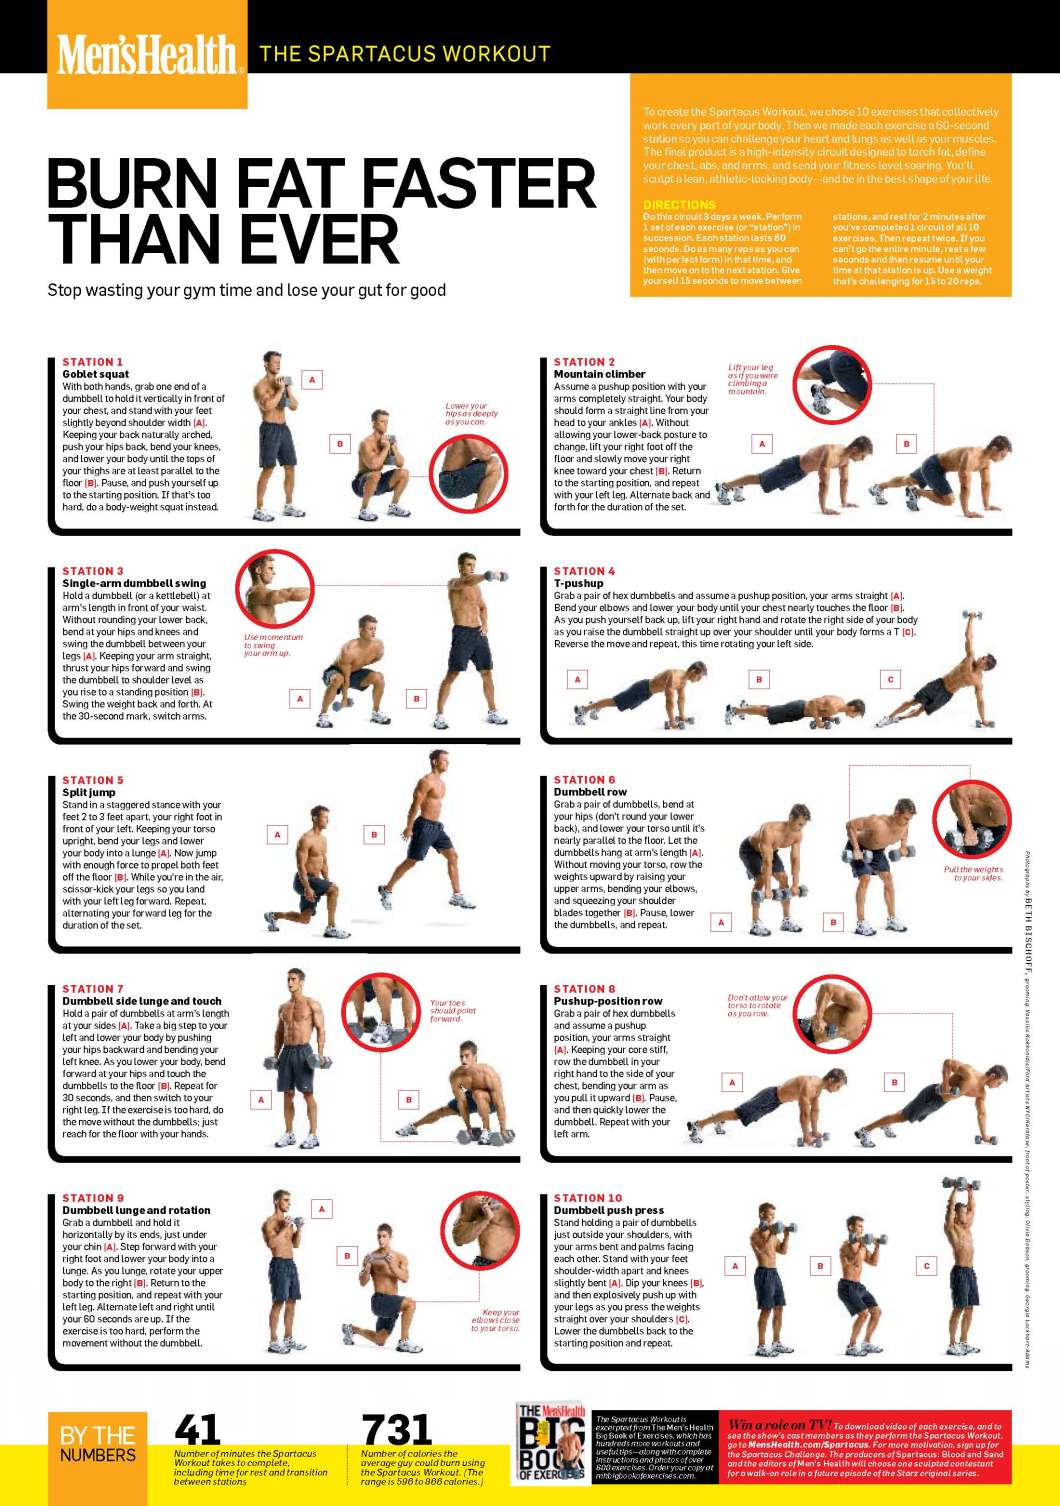 Workout Routine For Marcy Home Gym